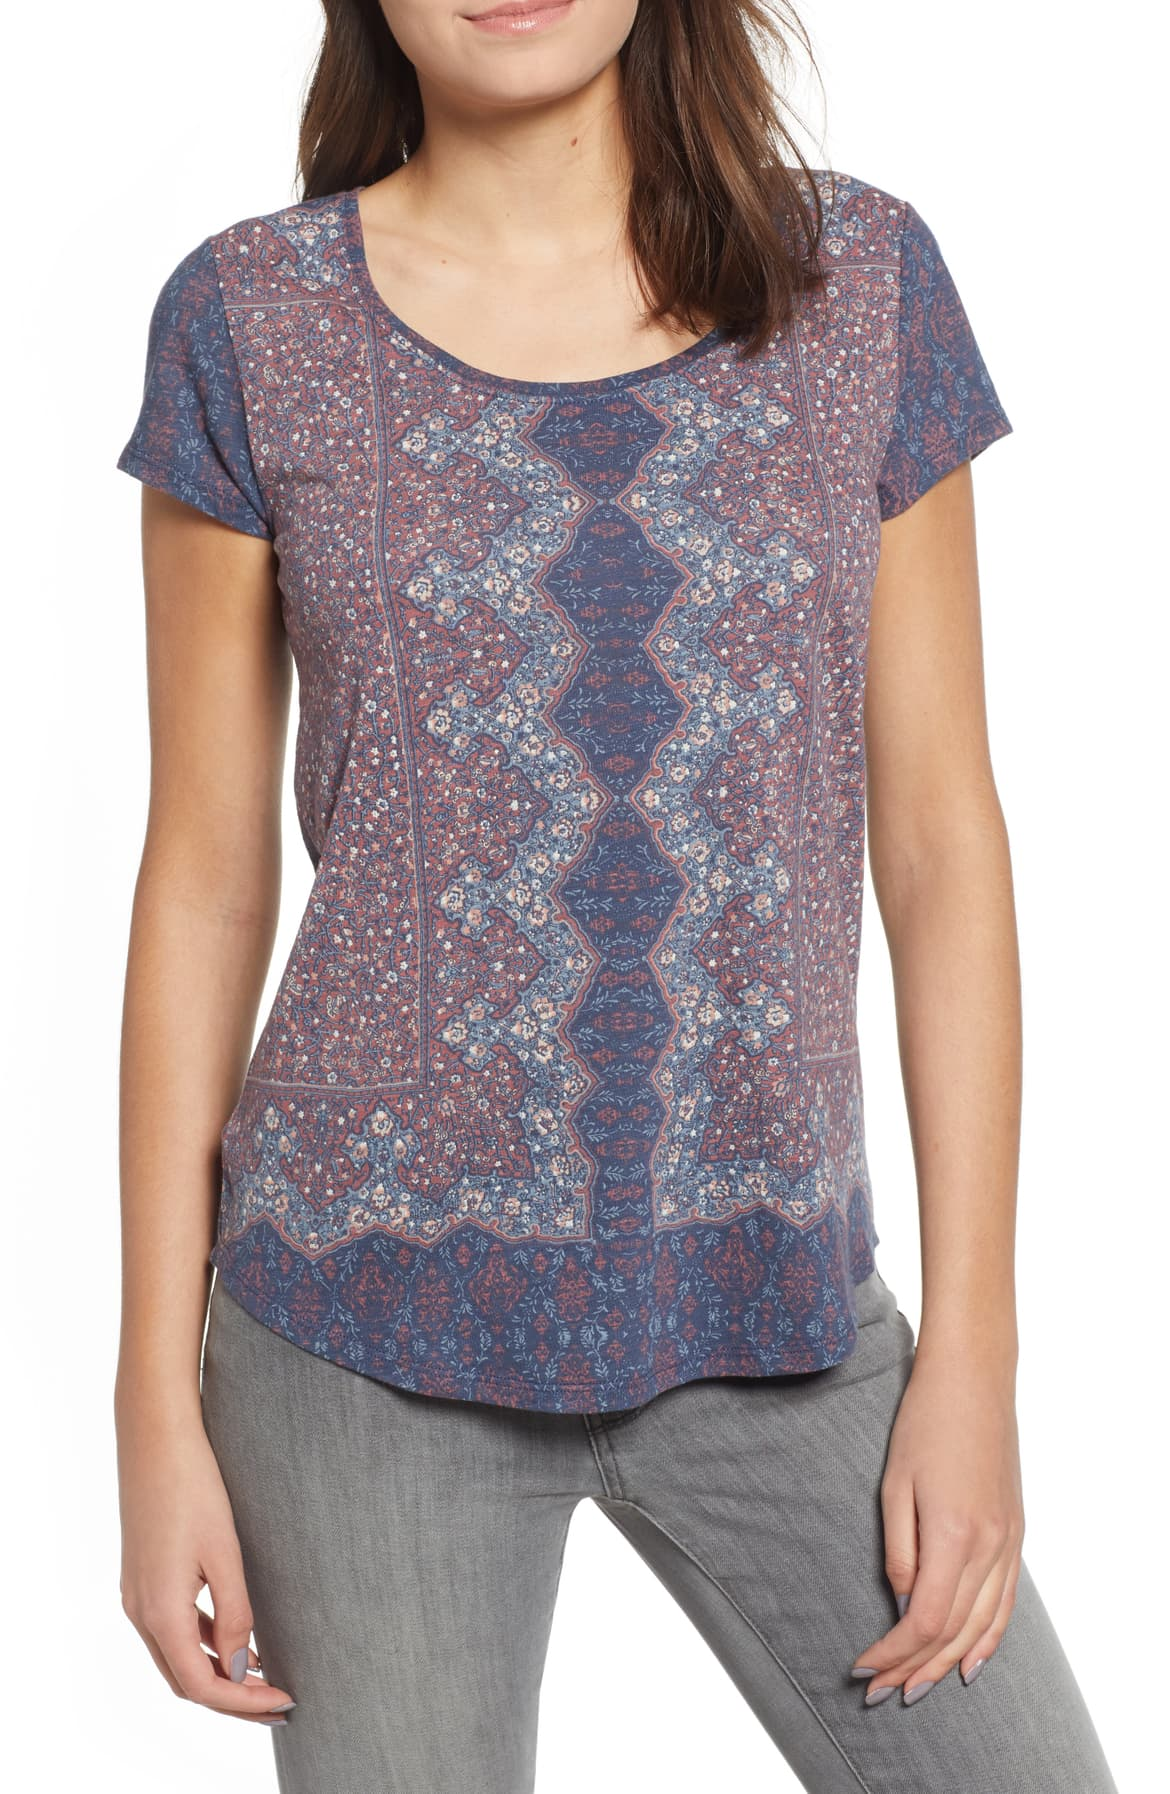 Lucky Brand All Over Print Tee Size XS Navy Top NEW